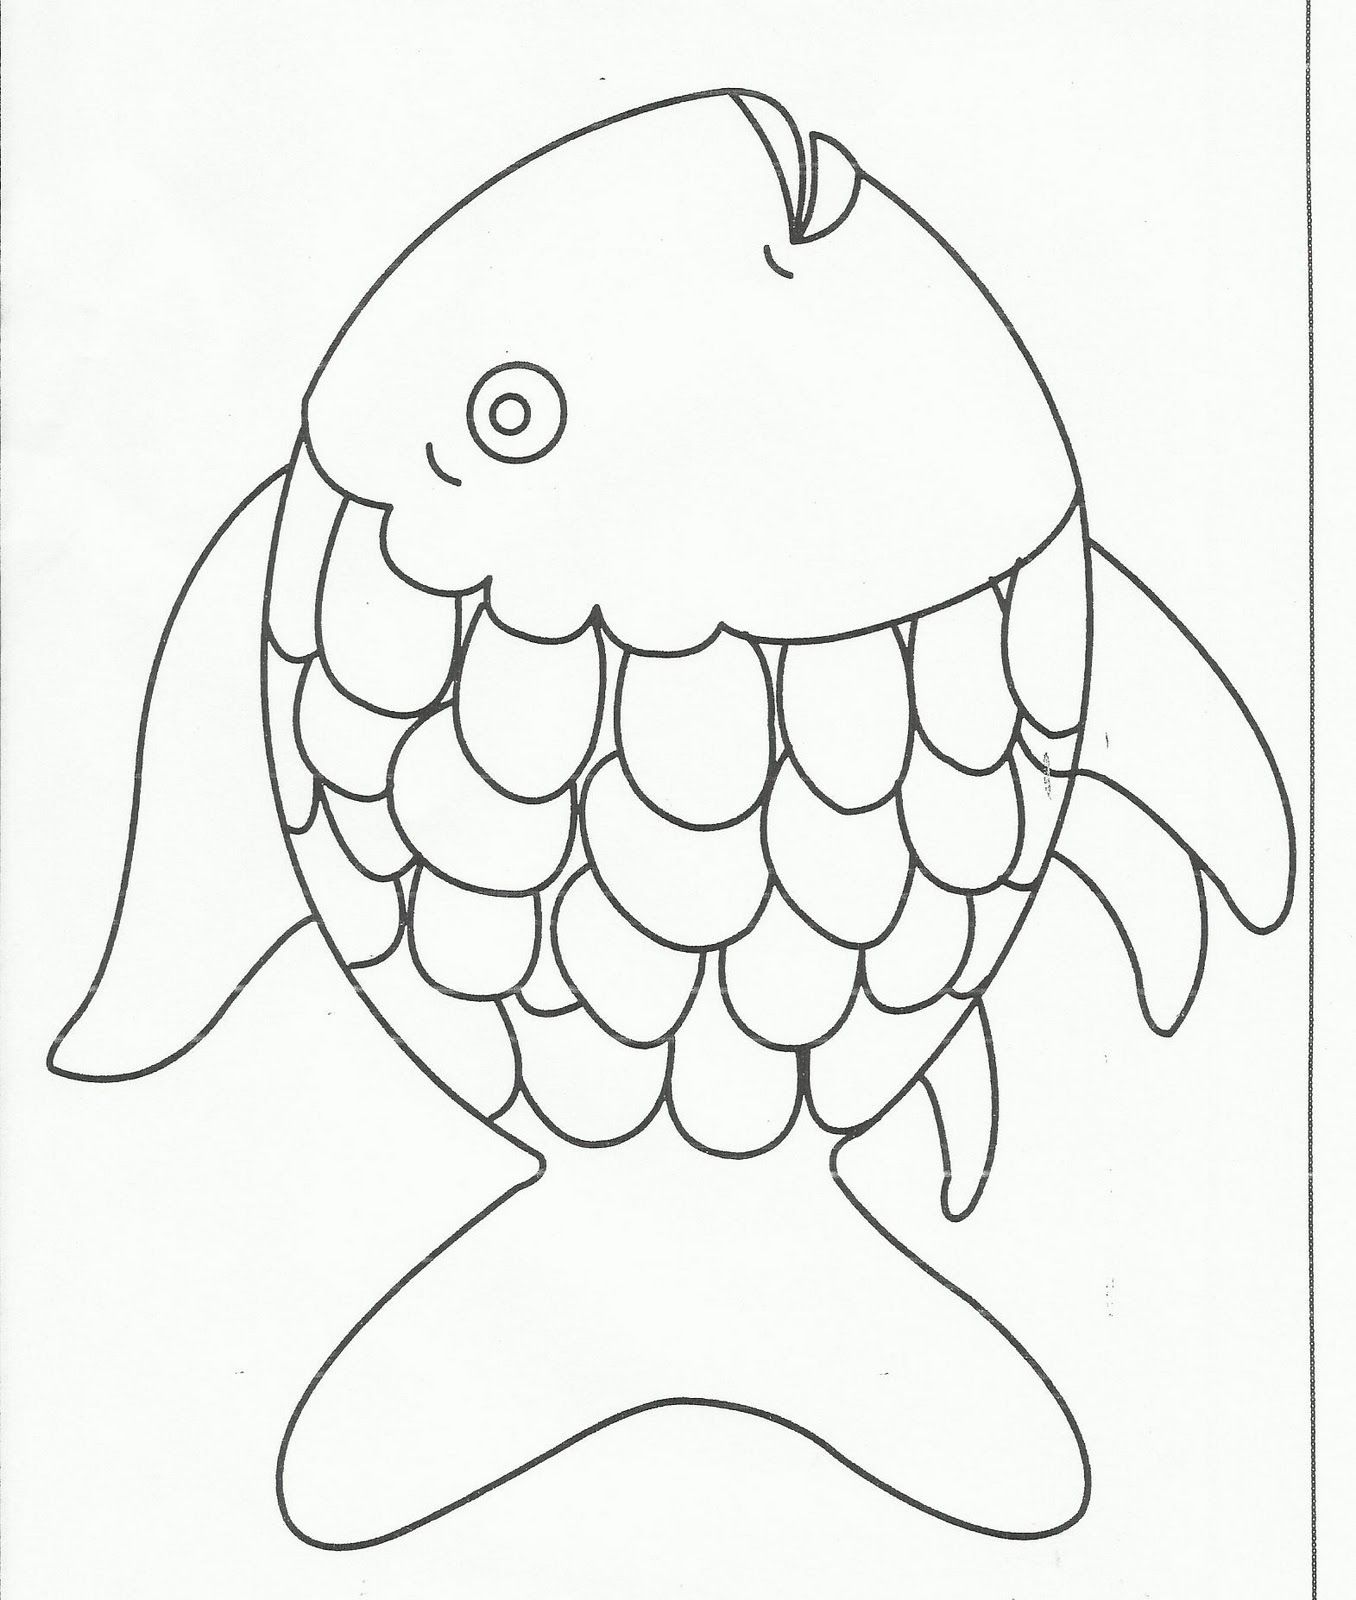 Coloring pages fish